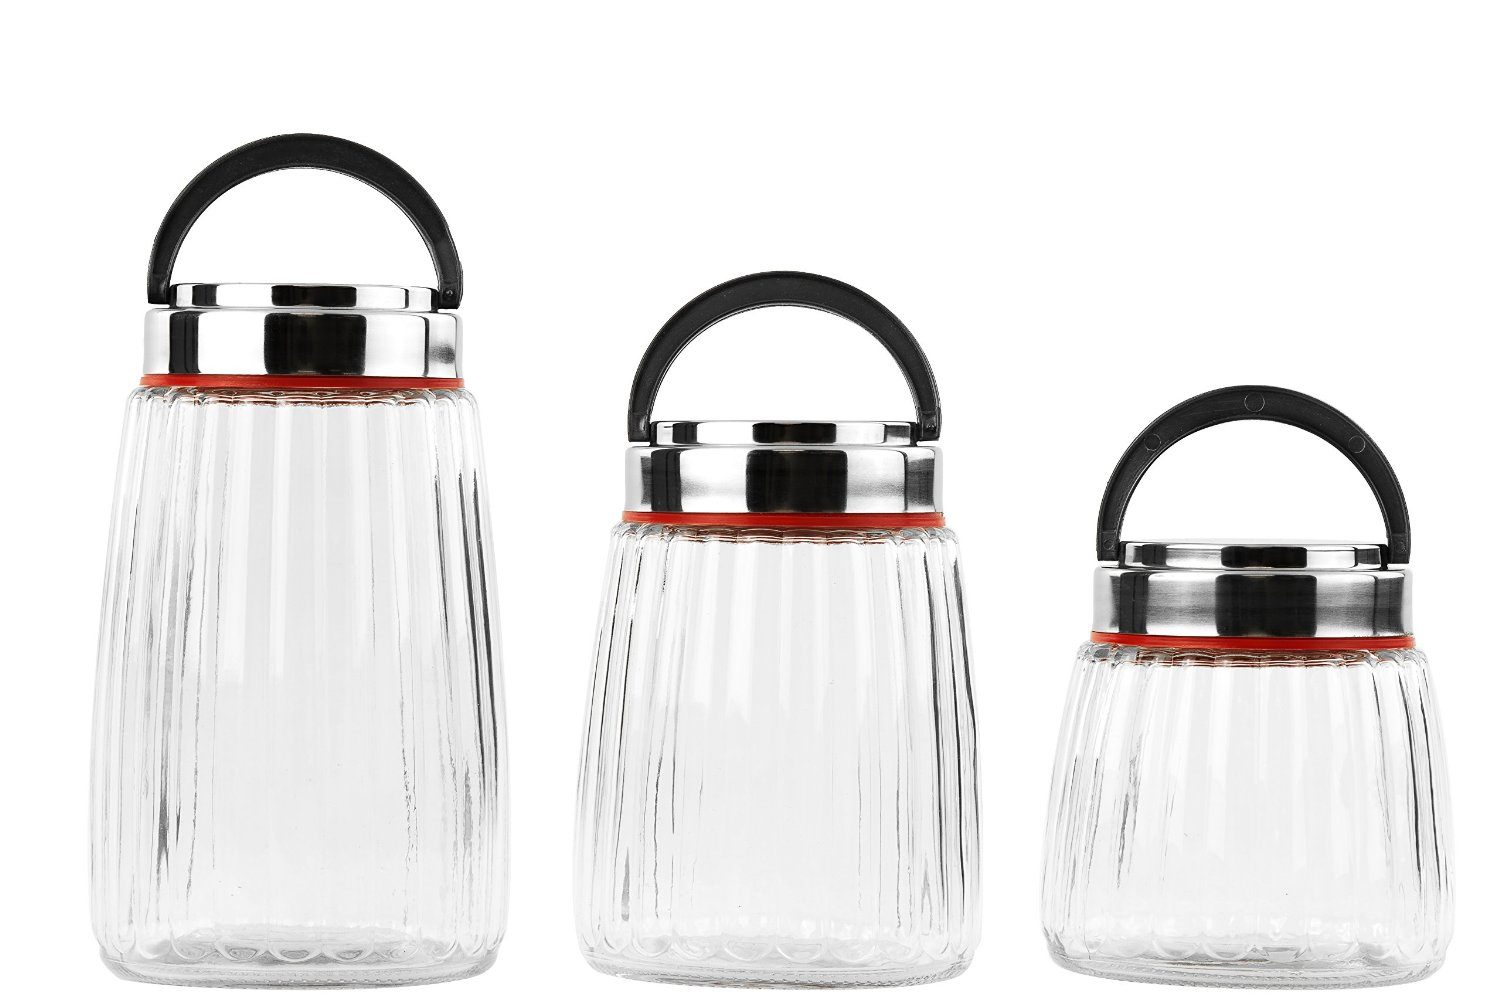 6 Piece Round Glass Cookie Jar with Easy to Carry Handle Lid by